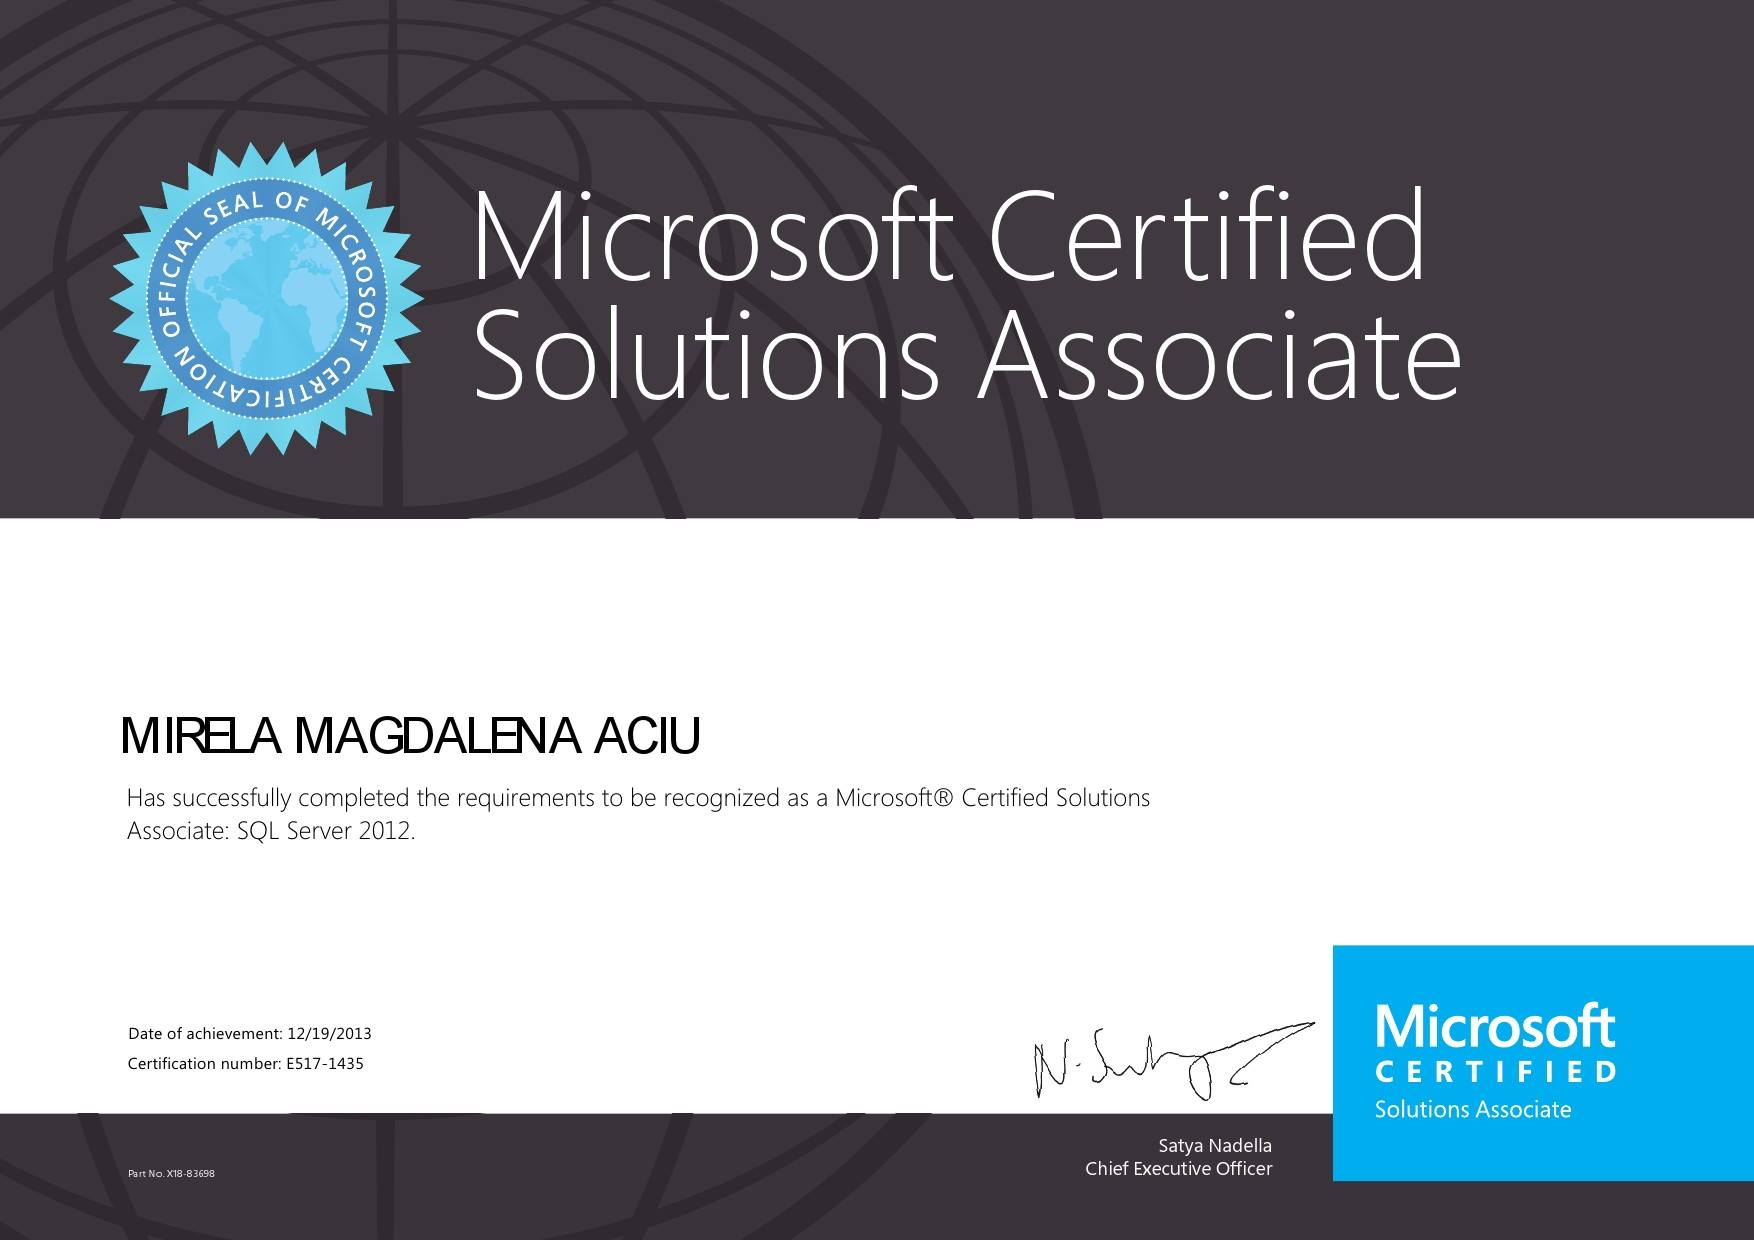 MIRELA MAGDALENA ACIU - Associate: SQL Server 2012